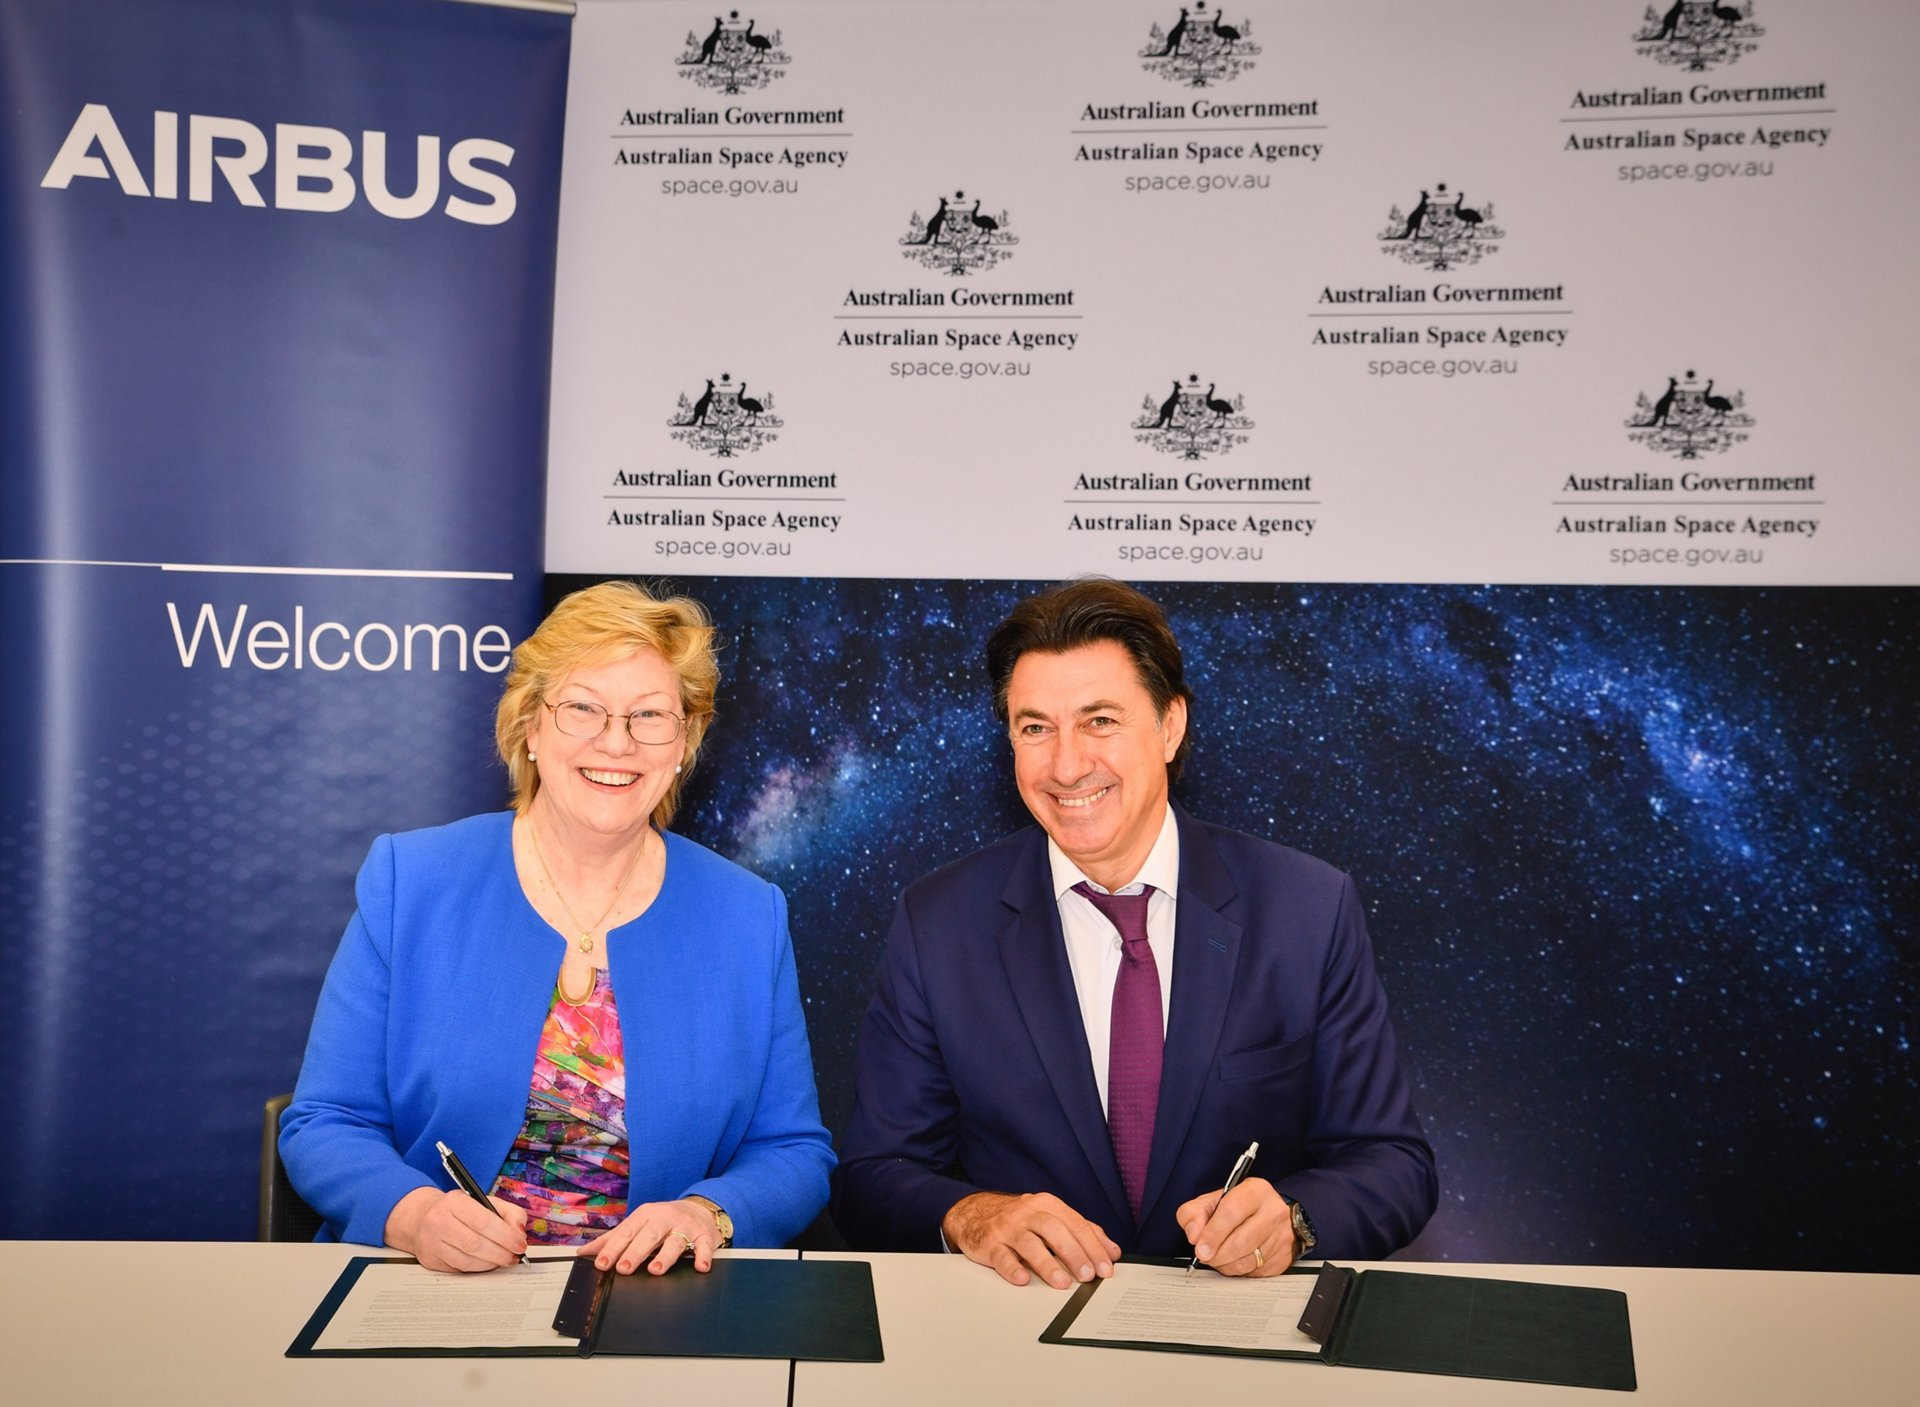 - Dr Megan Clark AC, Head of the Australian    Space Agency 